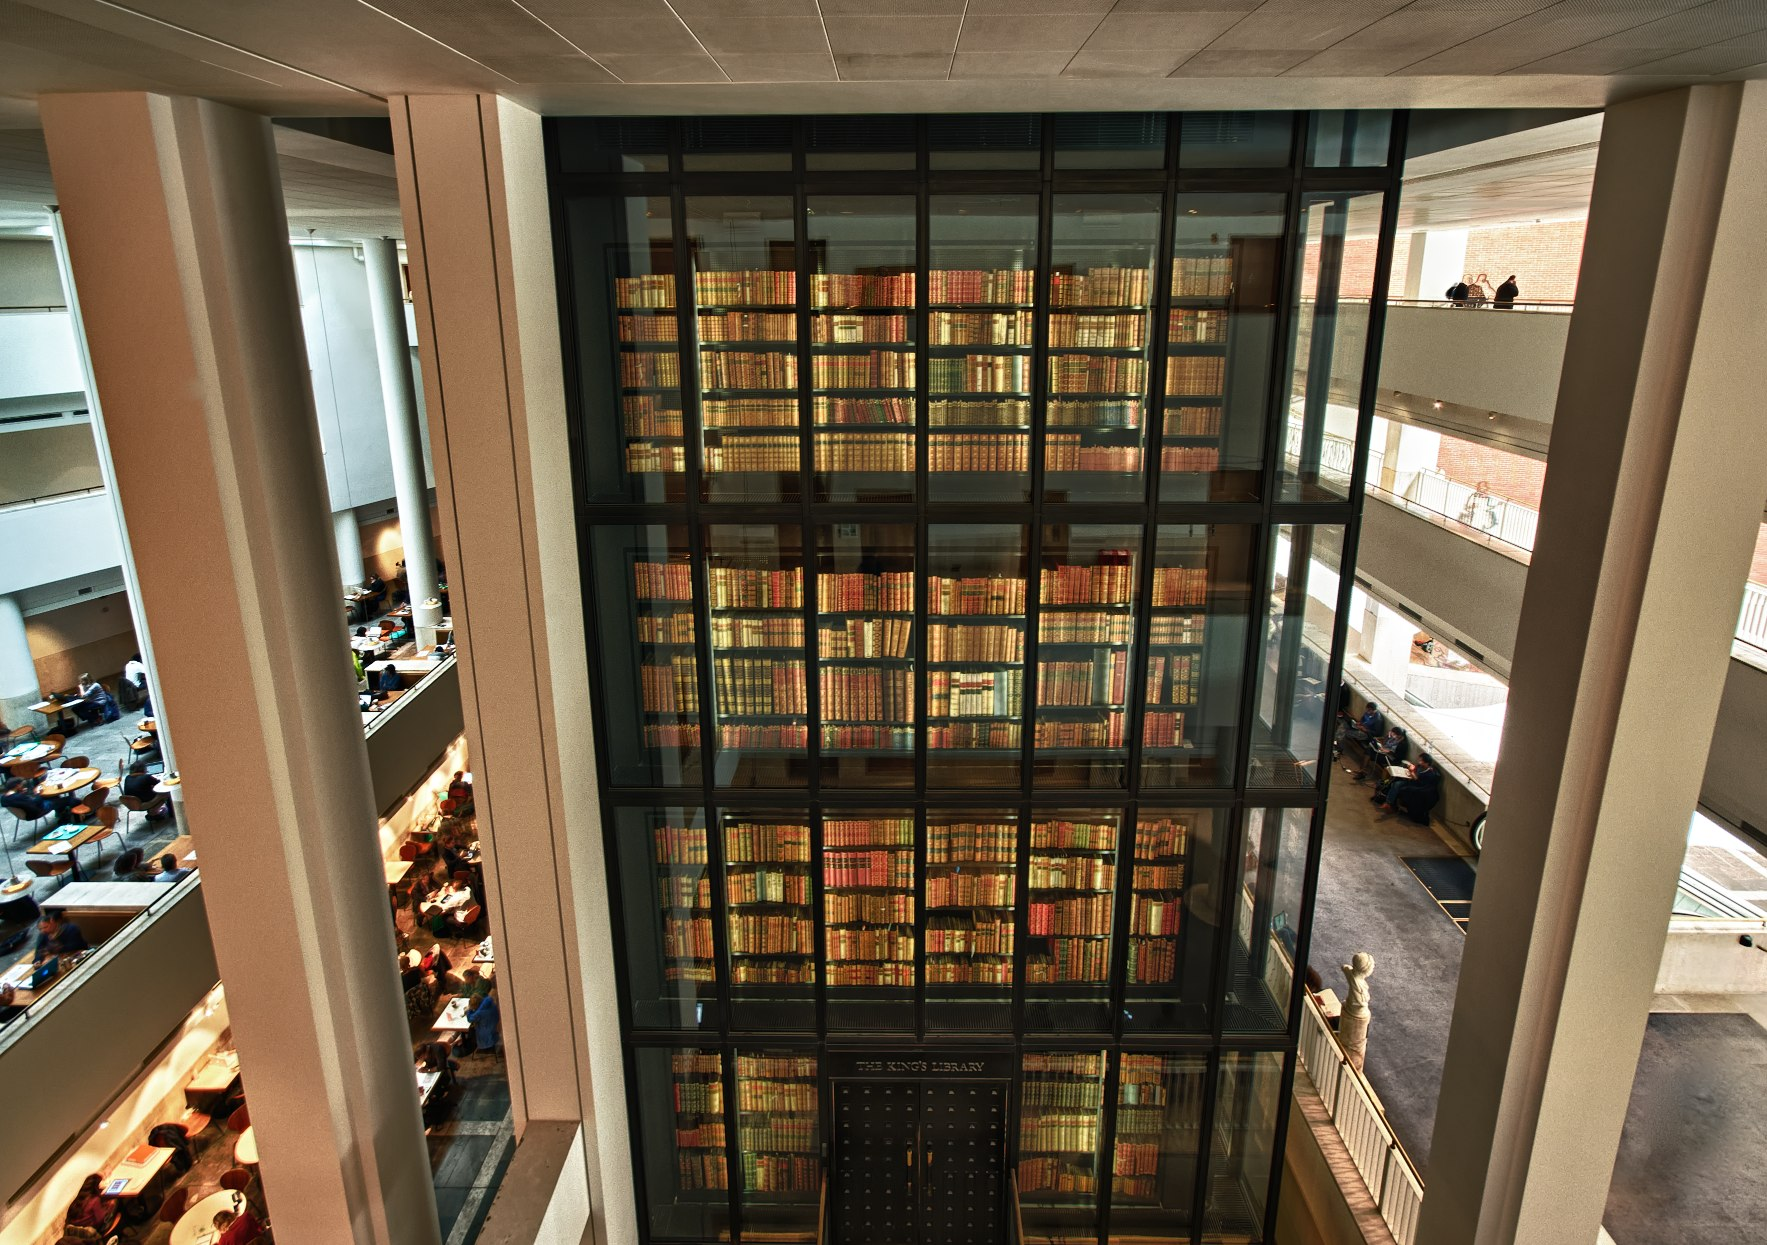 British Library Interior HDR